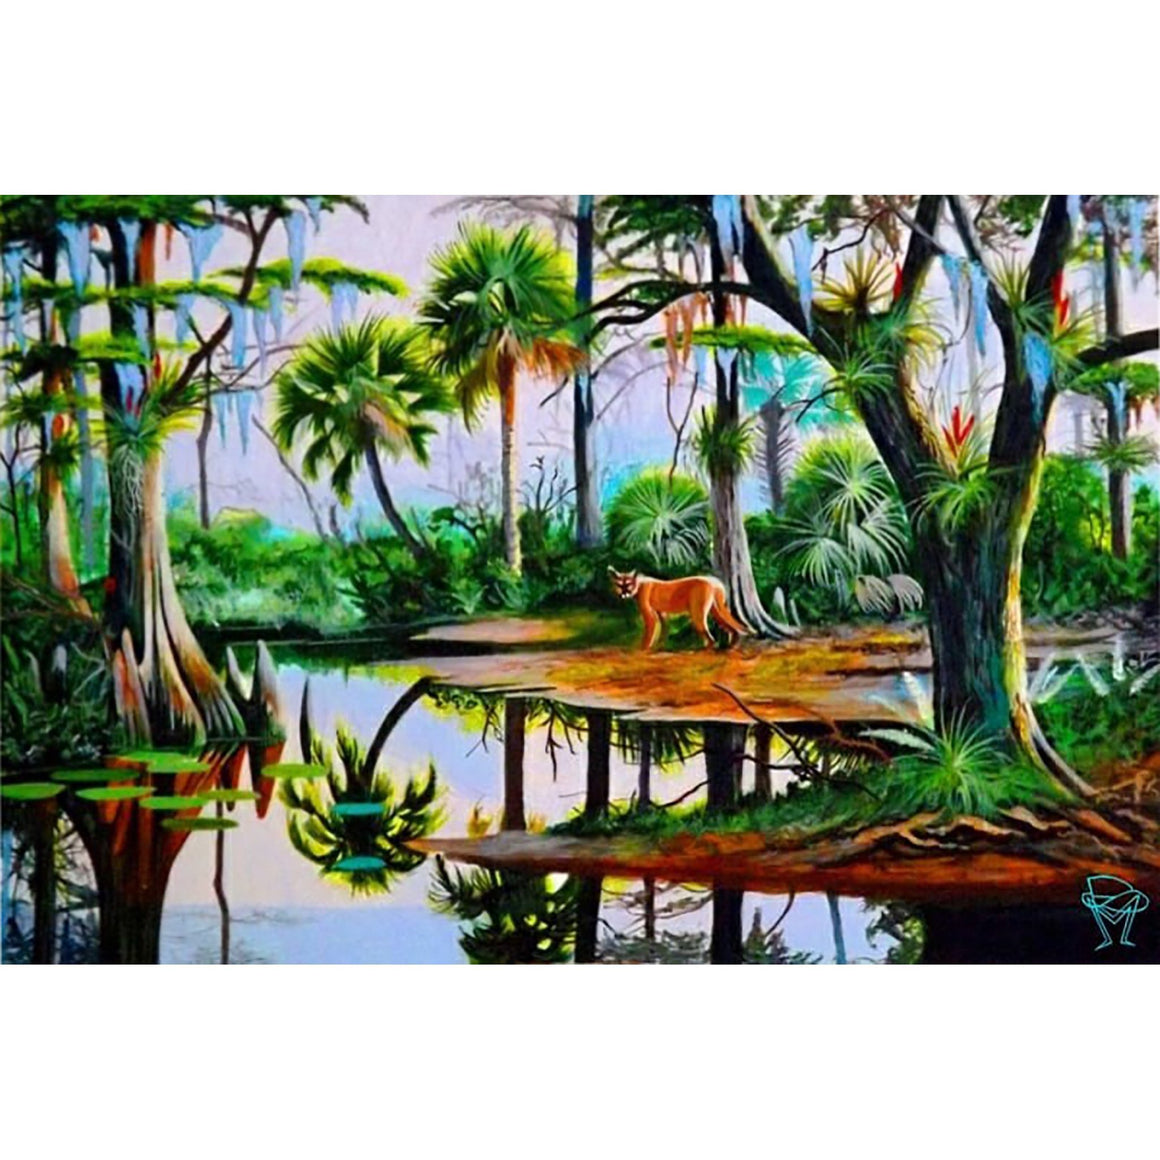 A cougar on a swamp forest